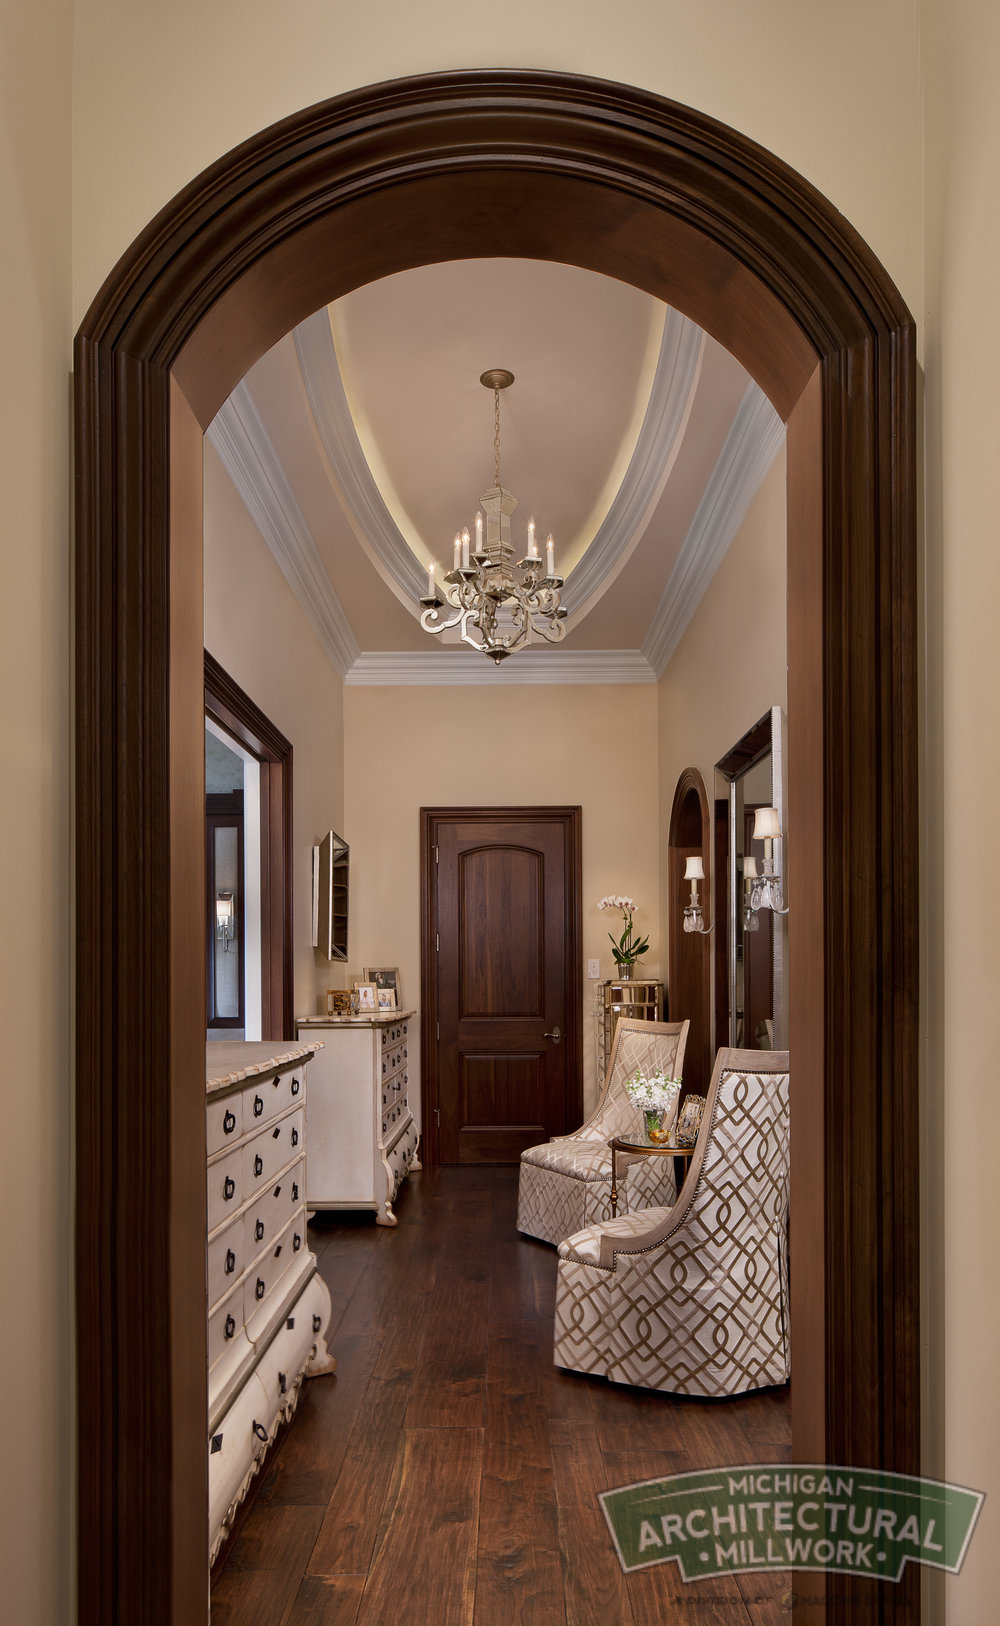 Michigan Architectural Millwork- Moulding and Millwork Photo-15.jpg